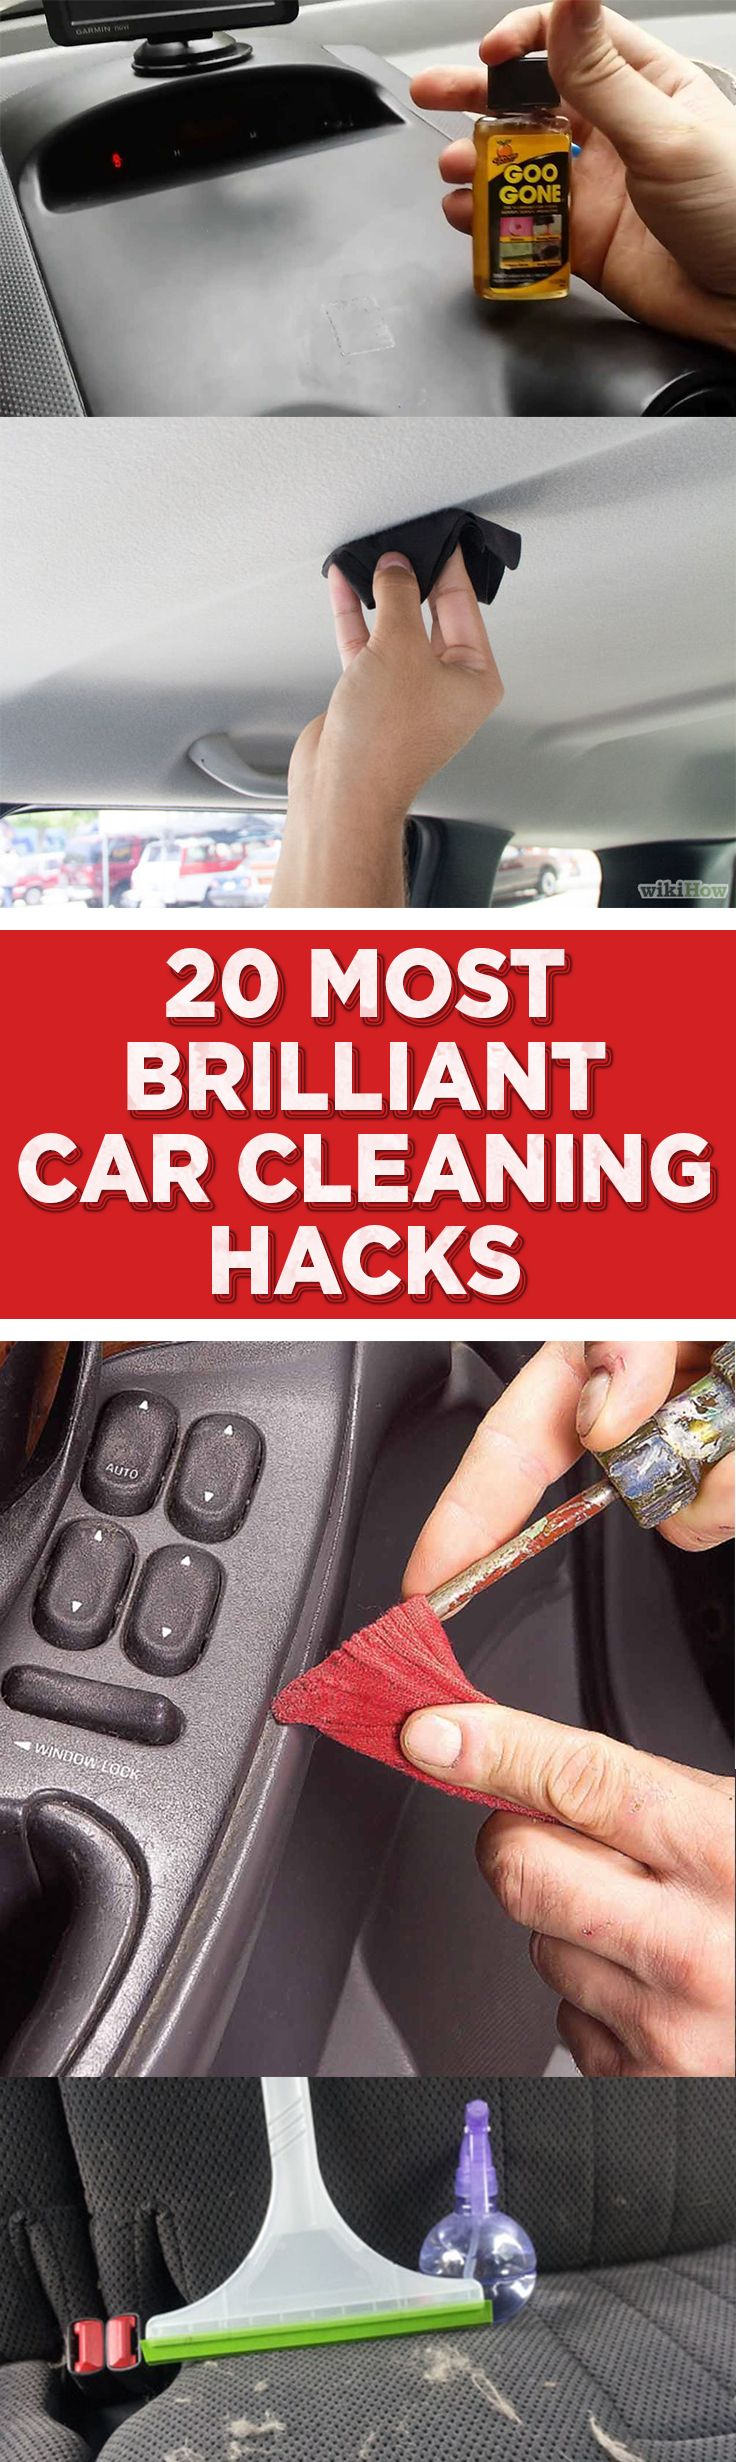 13 Most Brilliant Car Cleaning Hacks - Wrapped in Rust